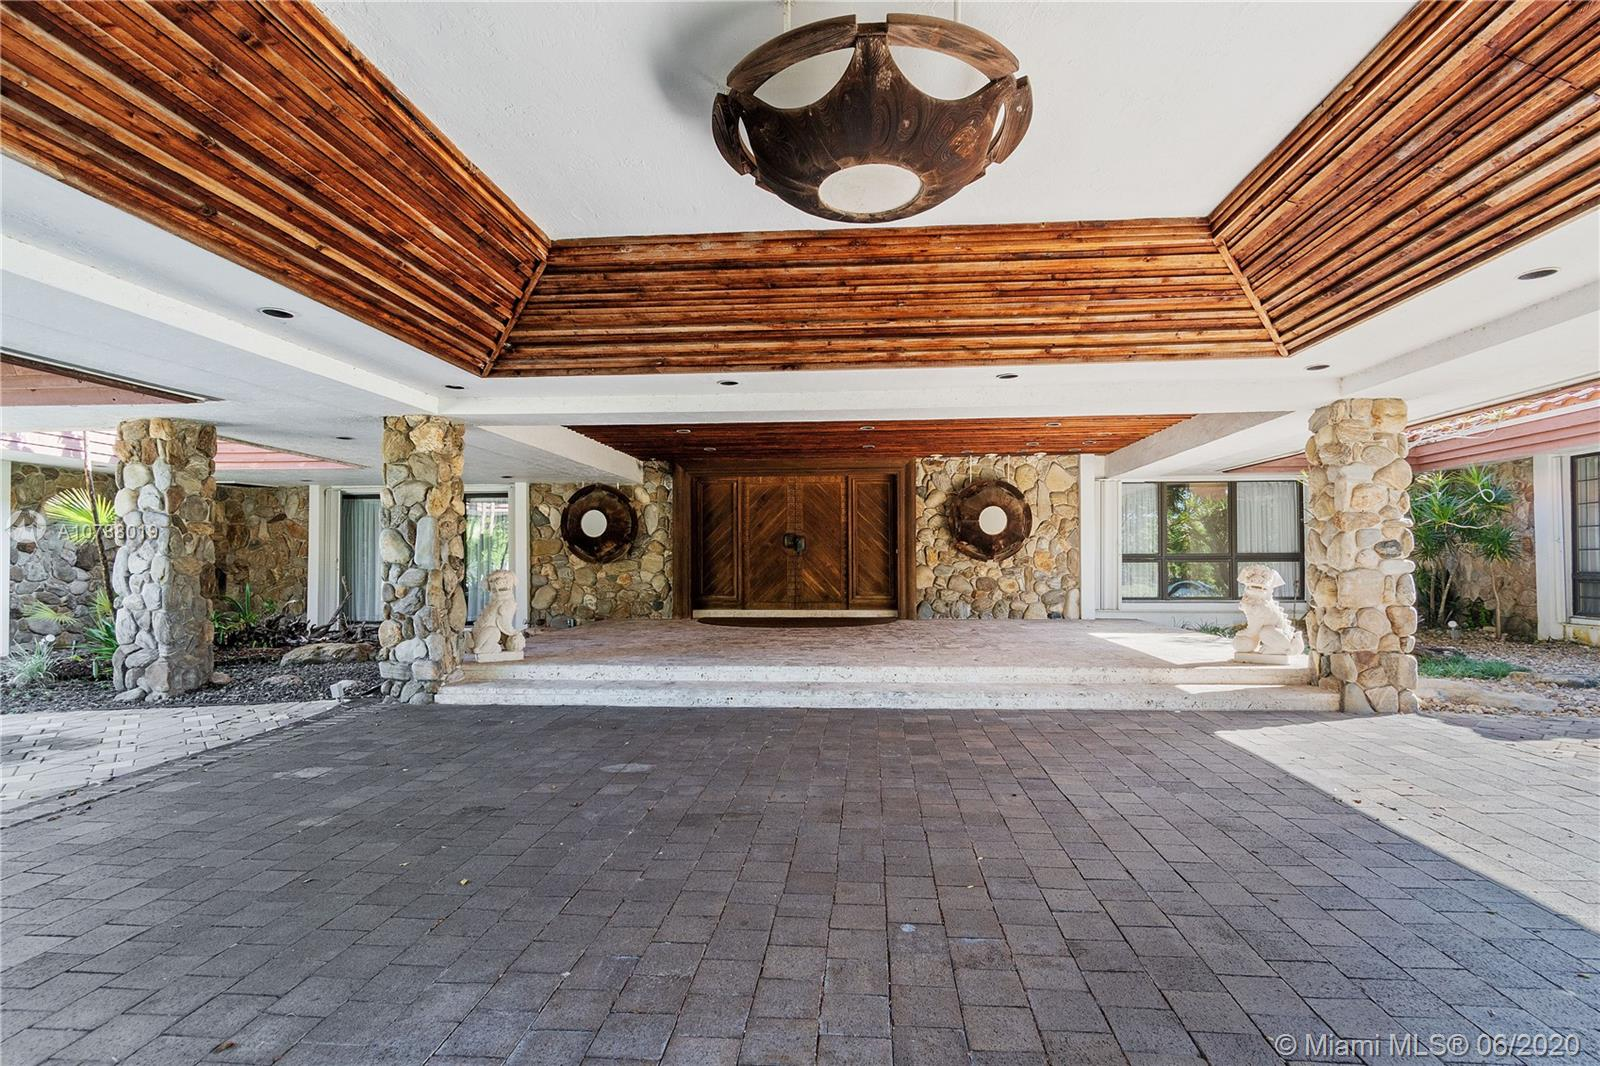 "This iconic Weston home affectionately nicknamed the ""House With The Horses"" could be yours. This mansion sits on a large estate with a vast lake frontage and luscious vegetation. The centerpiece of the living room is a massive stone fireplace that culminates into a cowhide-covered ceiling. You truly feel like you are standing in an African Safari Lodge. The backyard has a pool, a large chess set, and a pair of gazebos. One gazebo has 2 bedrooms of its own, and a full bathroom, while the second gazebo has 1 bedroom, a full bathroom, and a kitchen. Unique to this Weston mansion is a walk-in safe that can be utilized as a safe room. The master bedroom's walk-in closets are lined with Cedarwood. The driveway leads you to the magnificent wooden entrance of the mansion or to a 3 car garage."